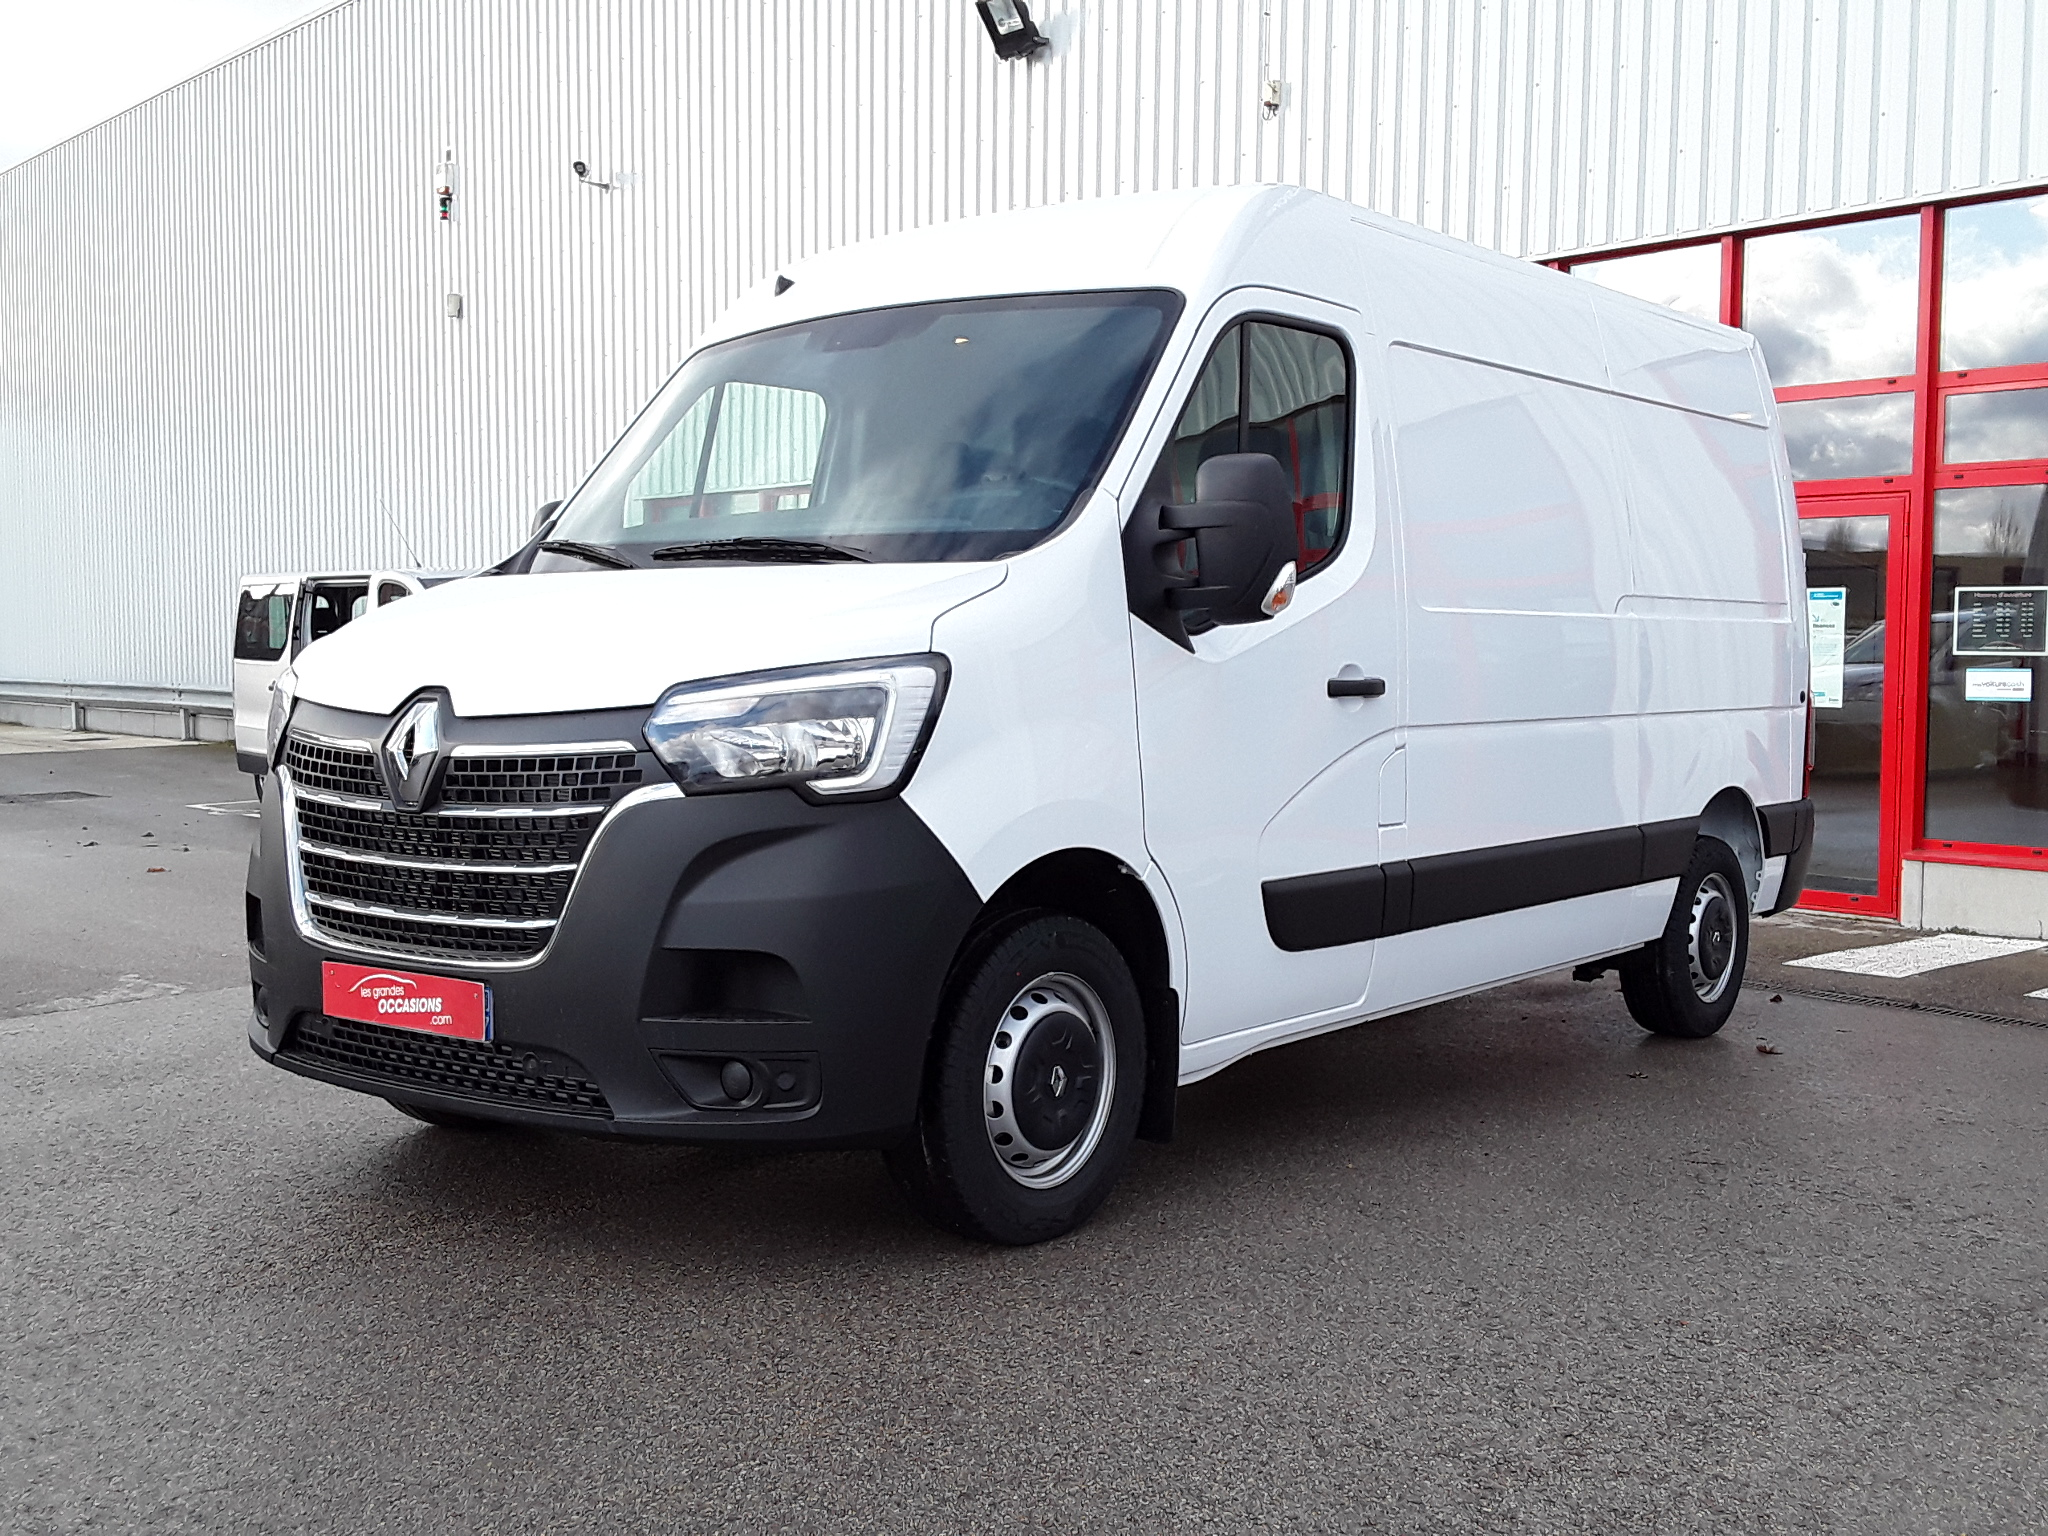 RENAULT MASTER FOURGON TRACTION GRAND CONFORT F3500 L2H2 Energy dCi 150 d'occasion